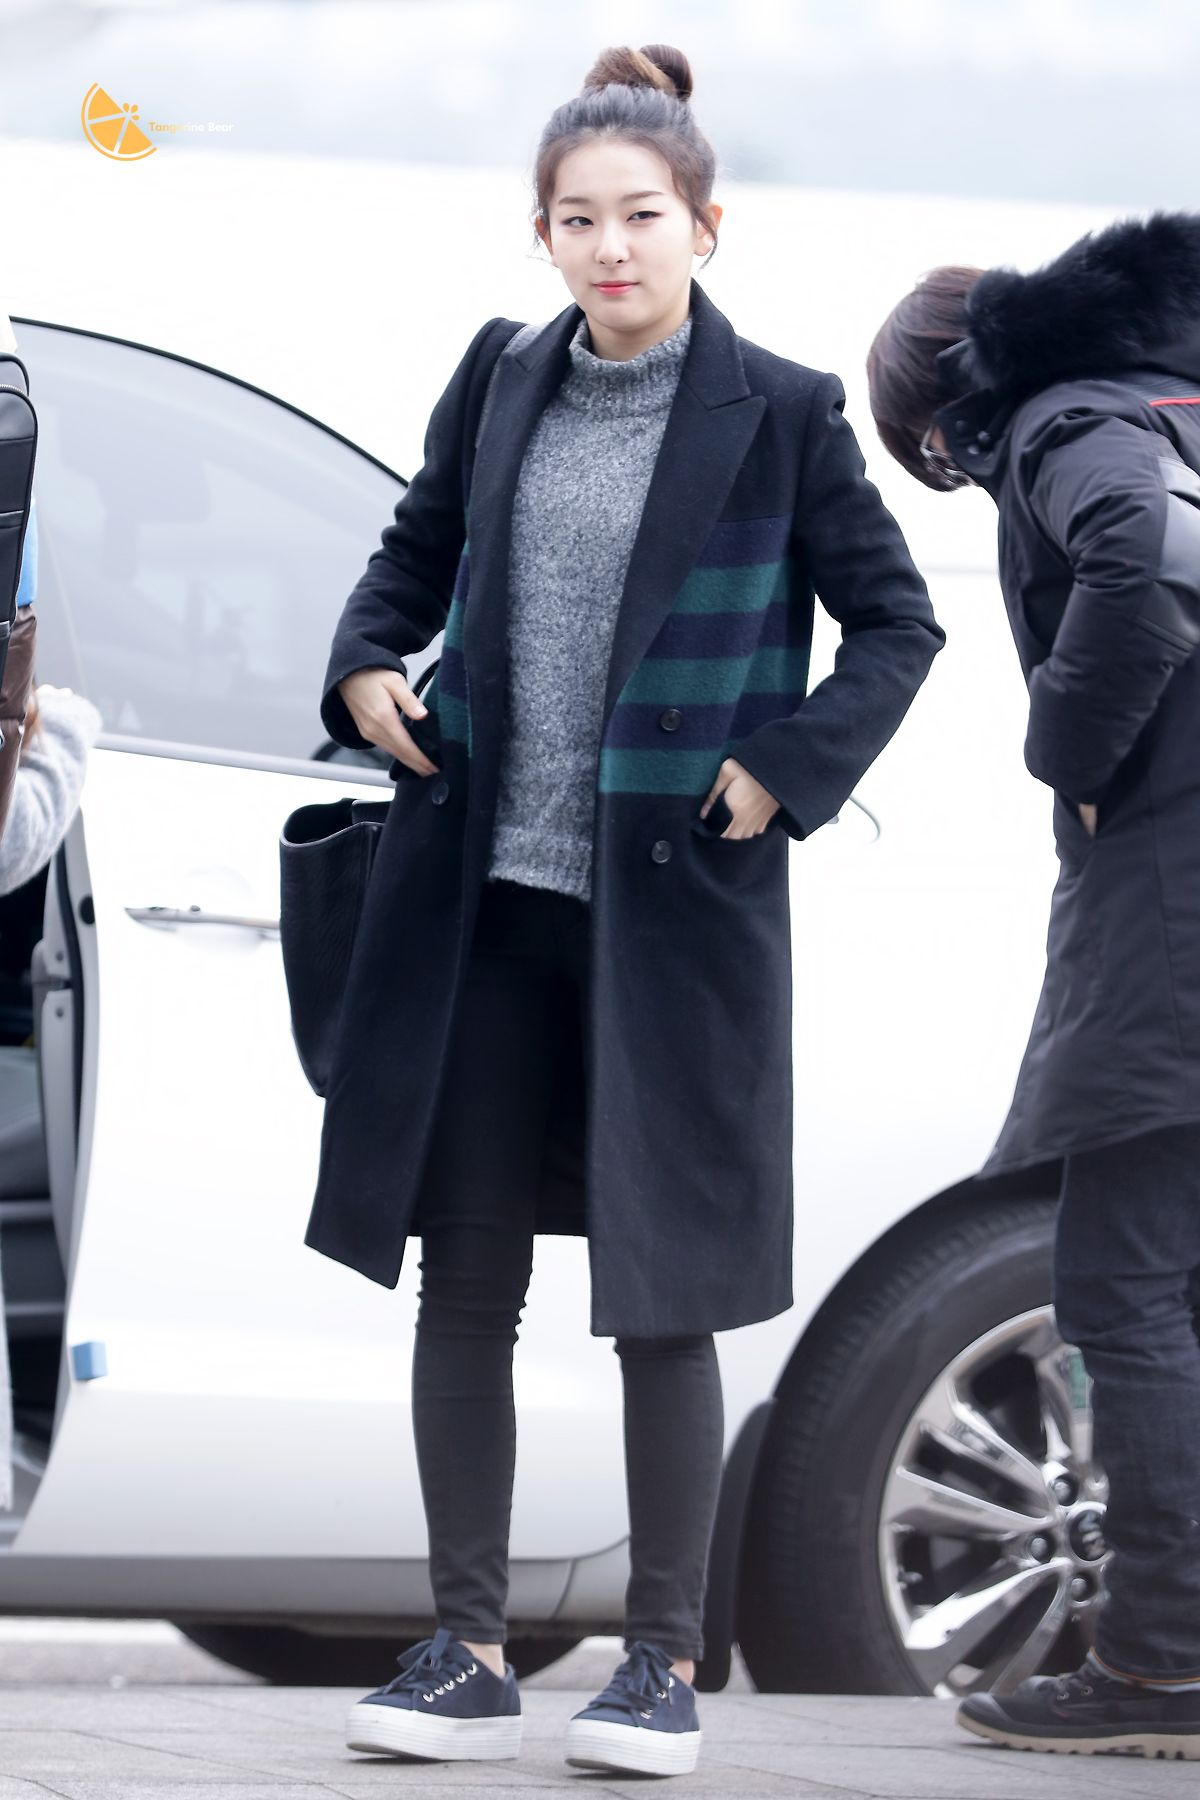 Other red velvet s airport fashion celebrity photos onehallyu - Red Velvet Seulgi Airport Fashion 150114 2015 Kpop